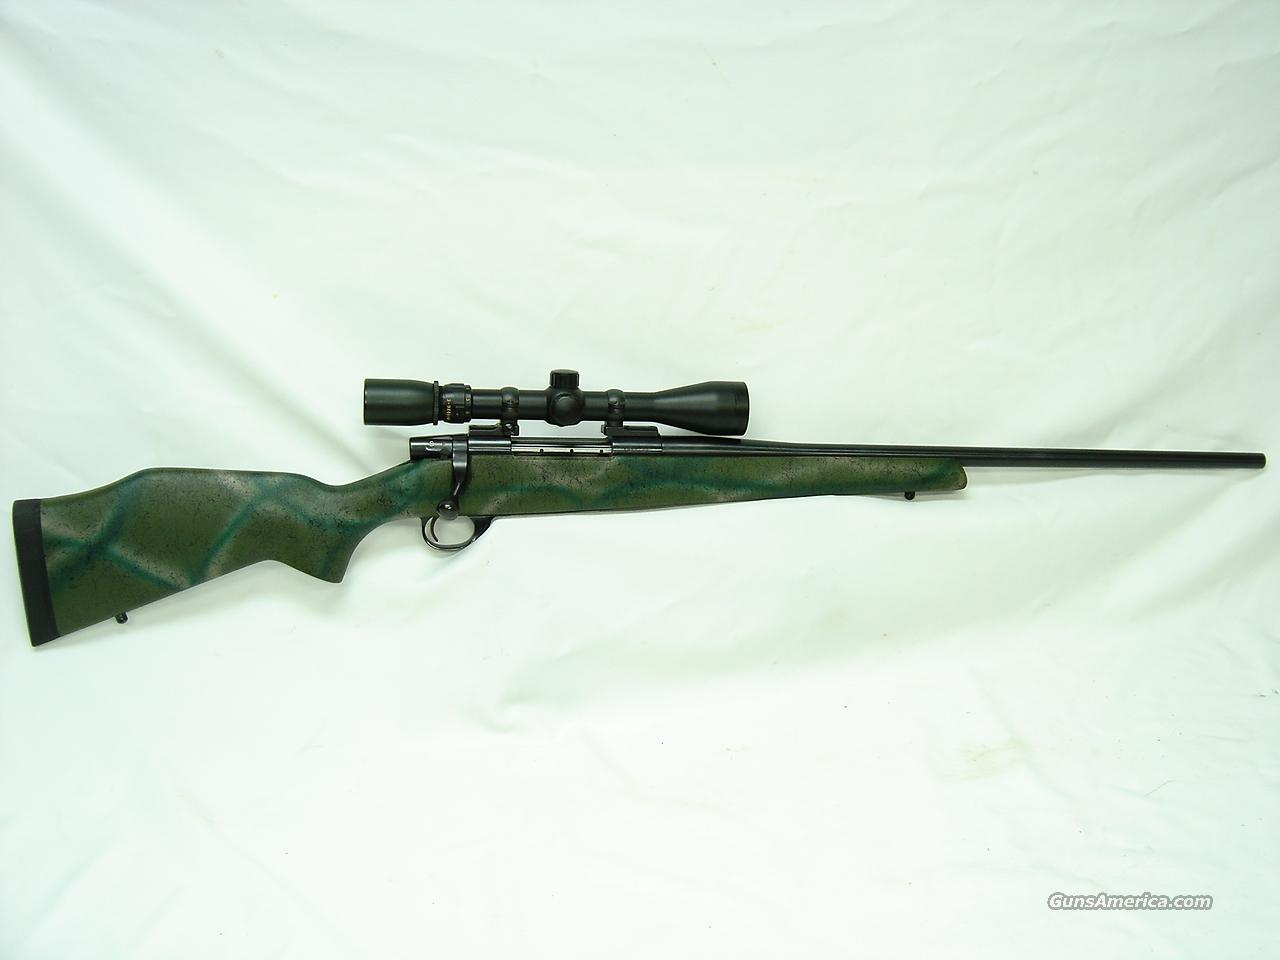 "WEATHERBY VANGUARD 30/06 24""BL. CAMO STOCK 3X9 SIGHTRON SCOPE  Guns > Rifles > Weatherby Rifles > Sporting"